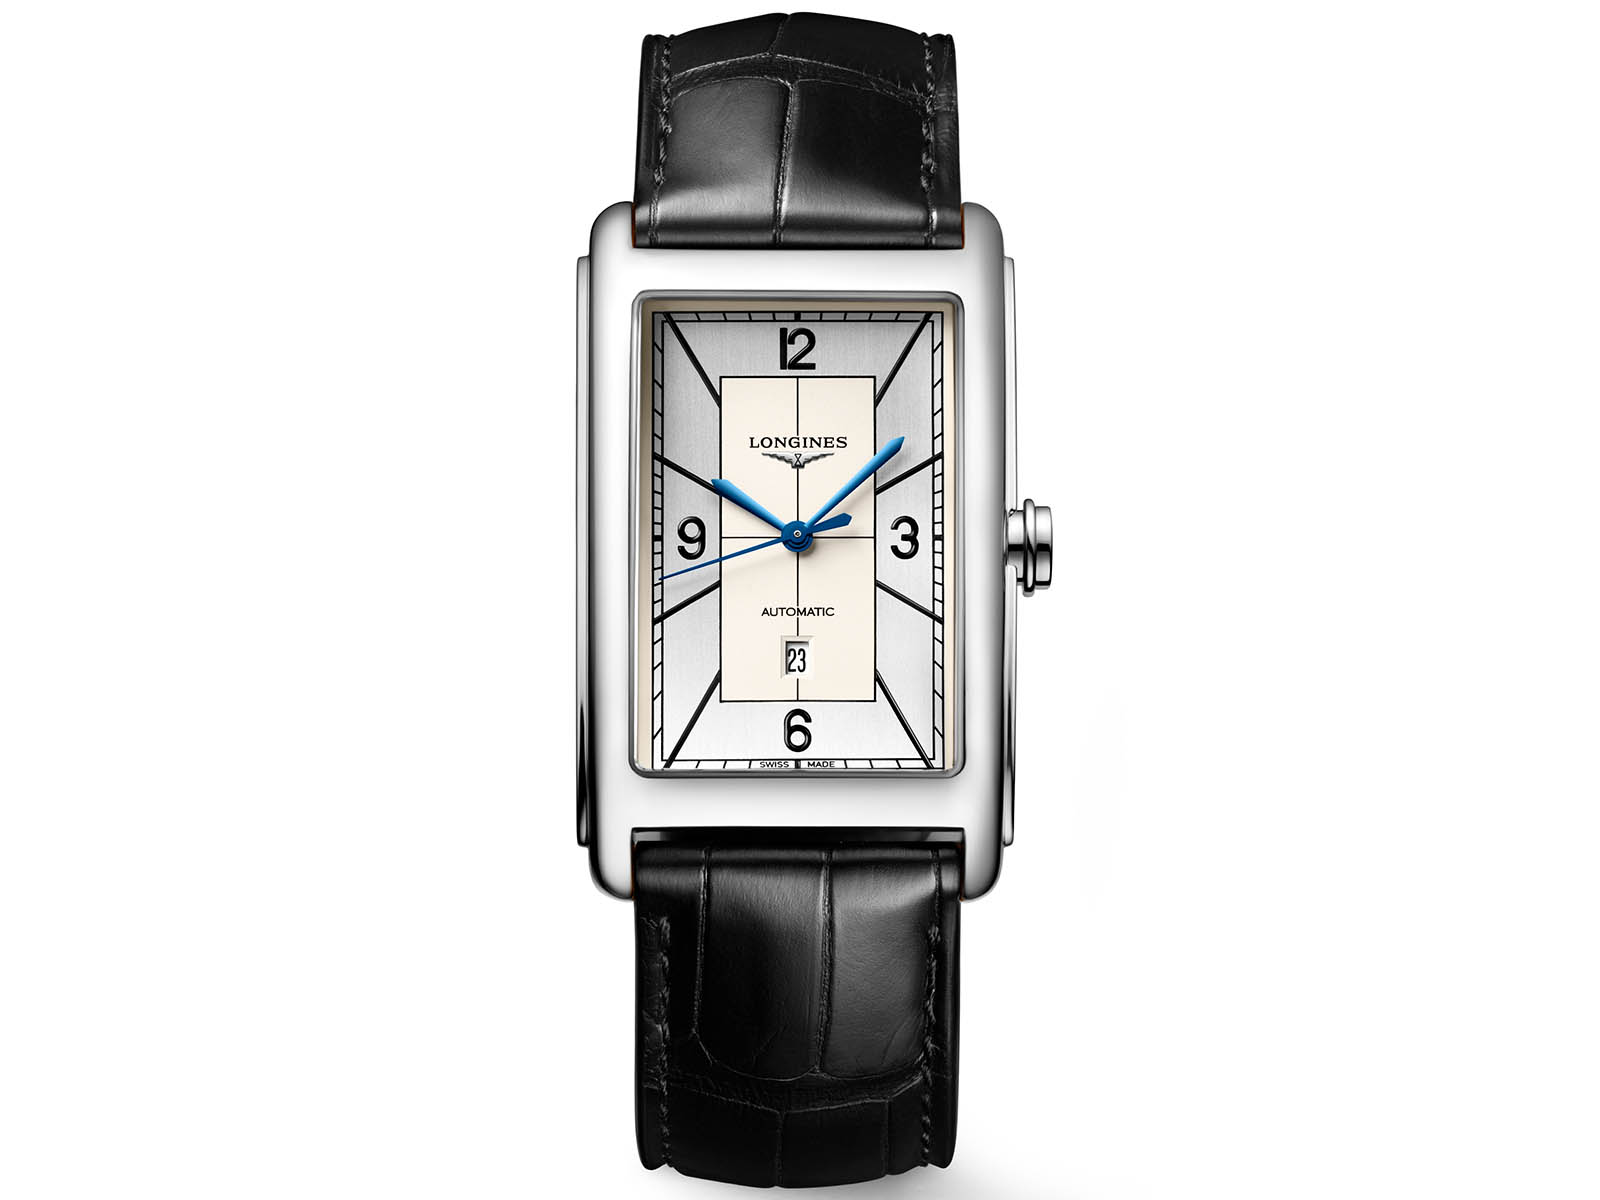 l5-767-4-73-3-longines-dolcevita-automatic-art-deco-sector-dial-3.jpg